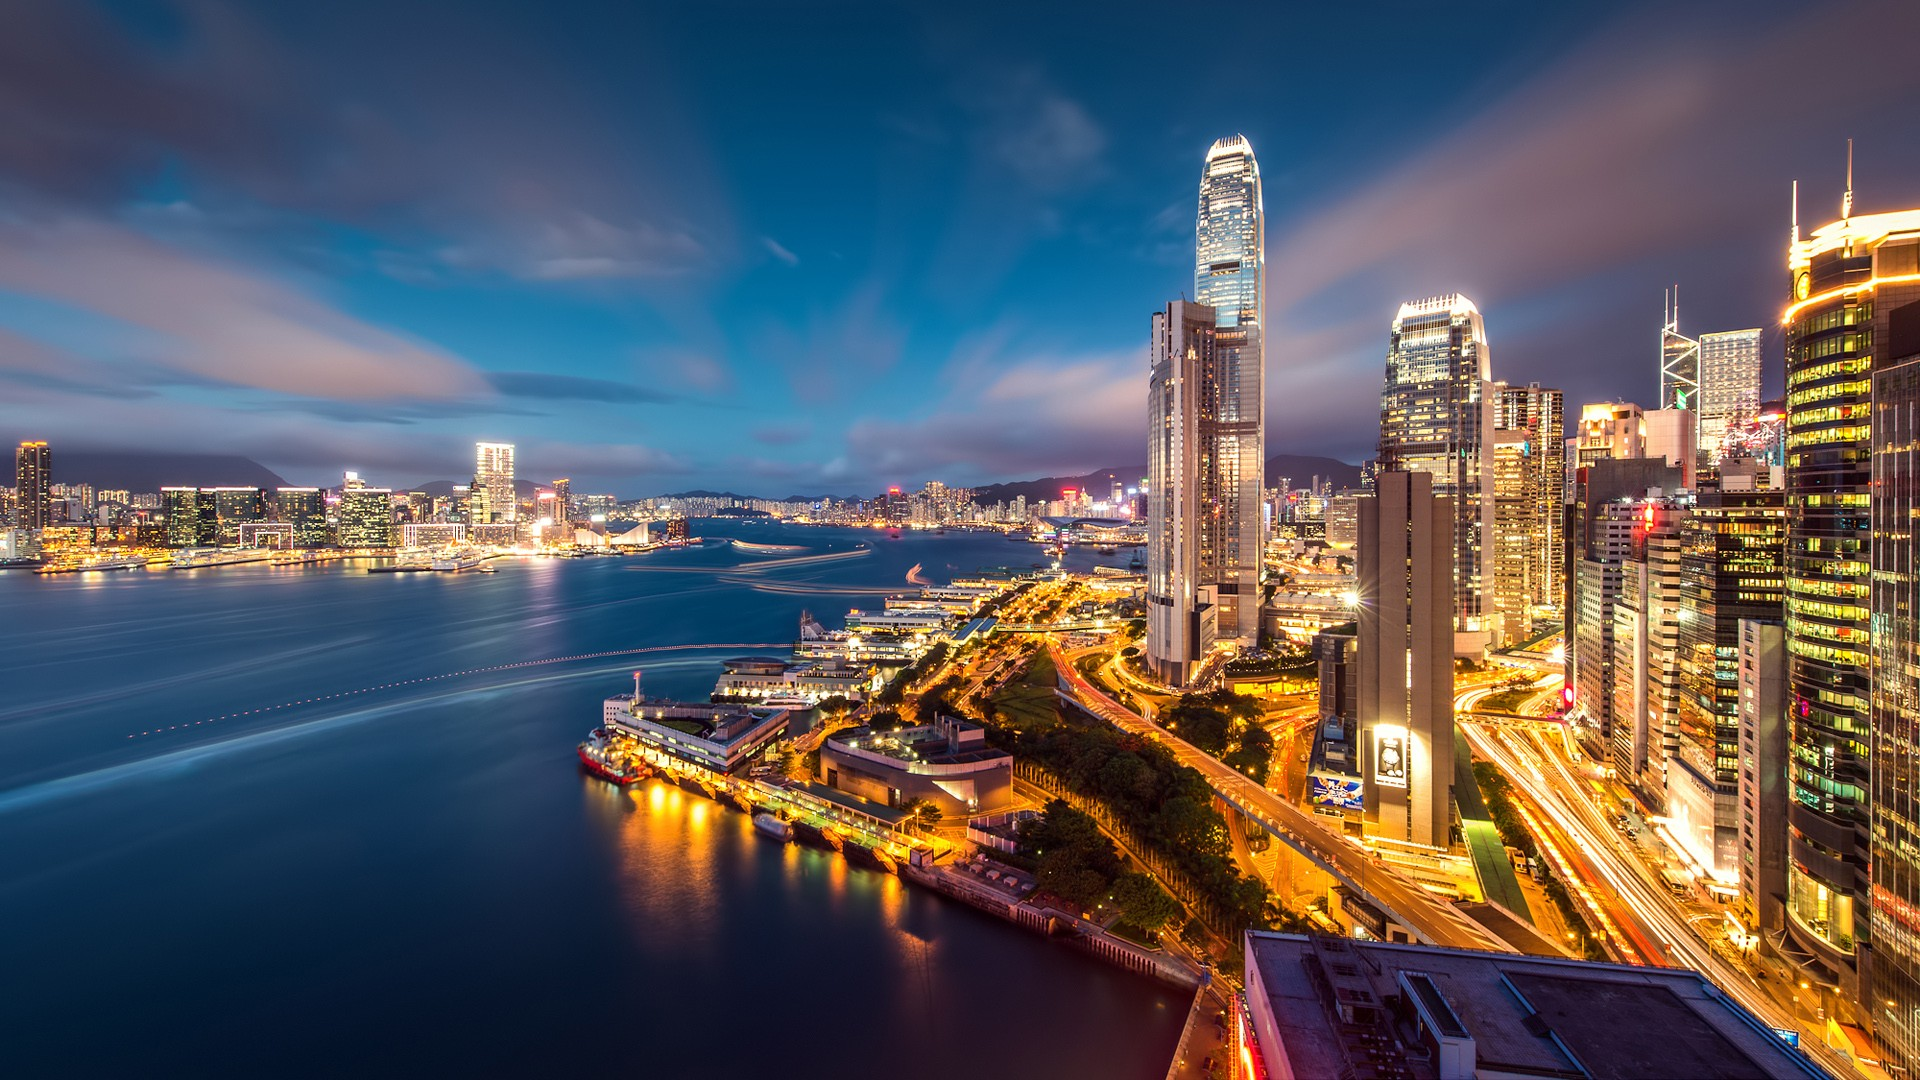 Hong Kong Harbour Night Lights Wallpapers | HD Wallpapers | ID #16033